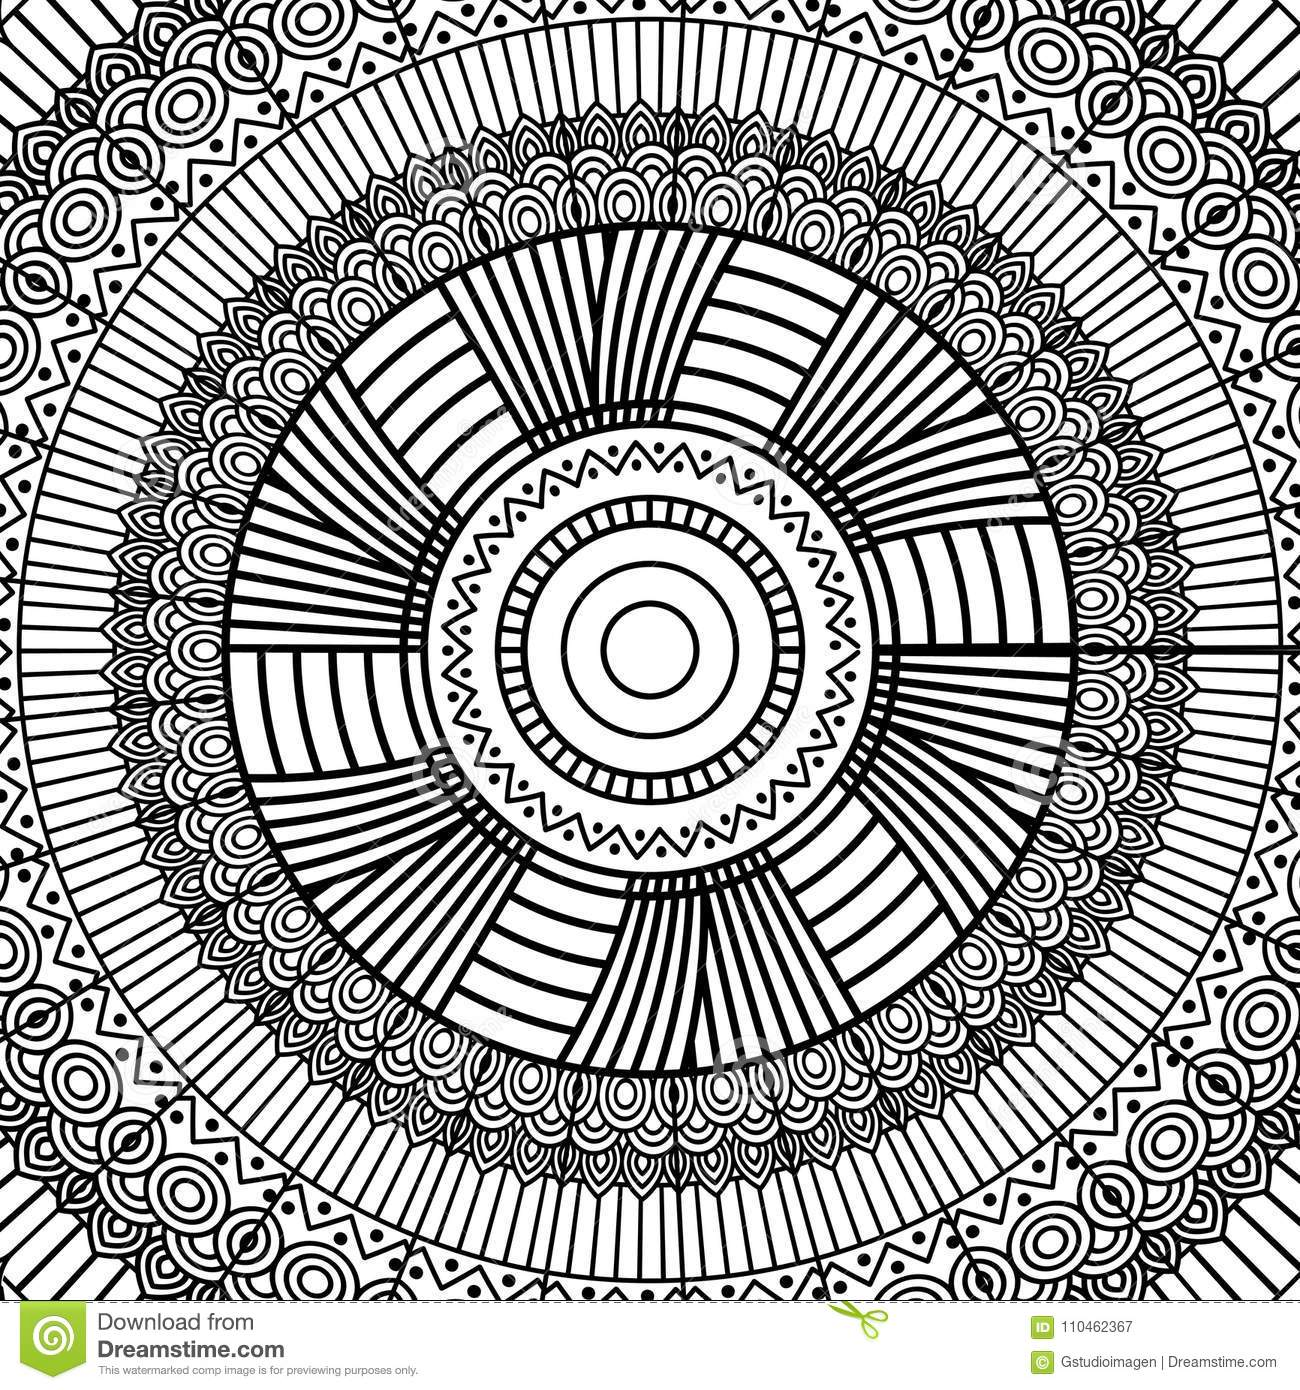 Download Black And White Geometric Mandala Tribal Round Ornament Decoration For Adult Coloring Book Stock Vector